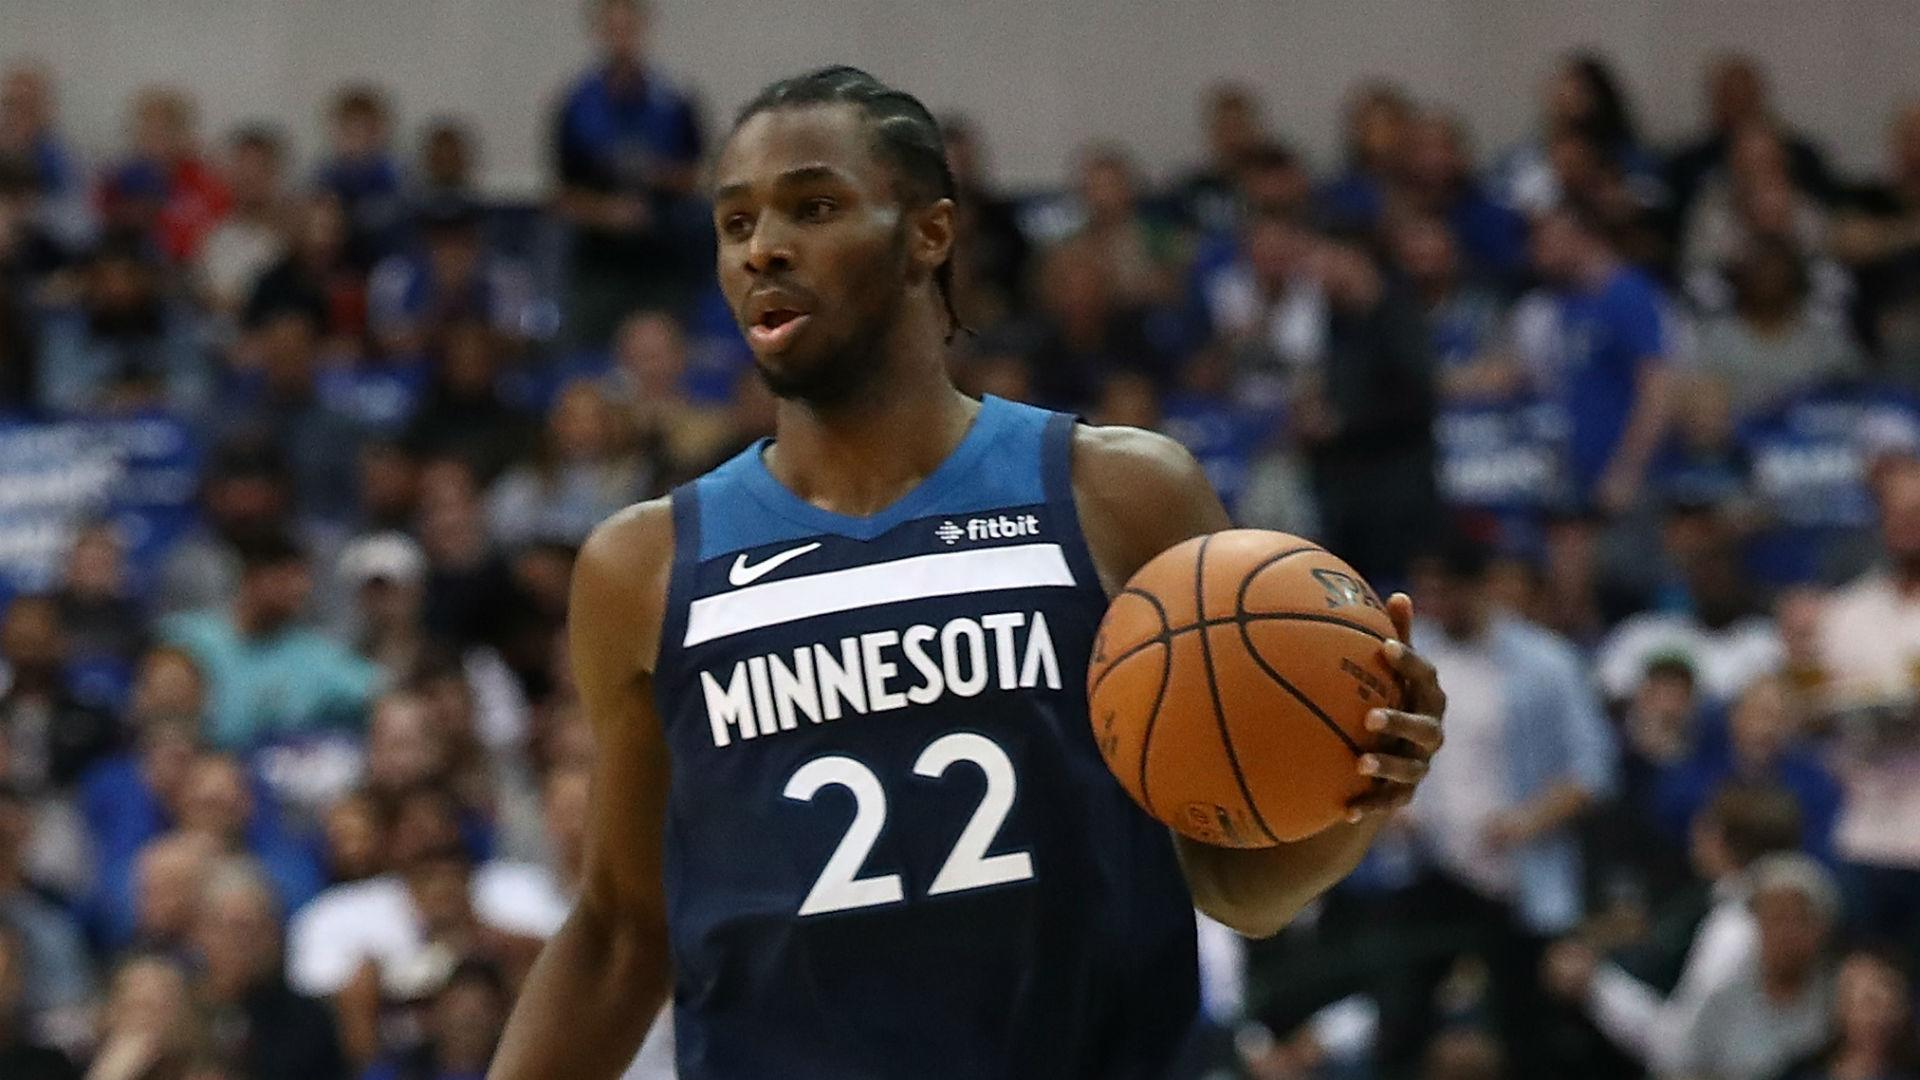 Wiggins Booed By Timberwolves Fans After Missing Late Free Throws